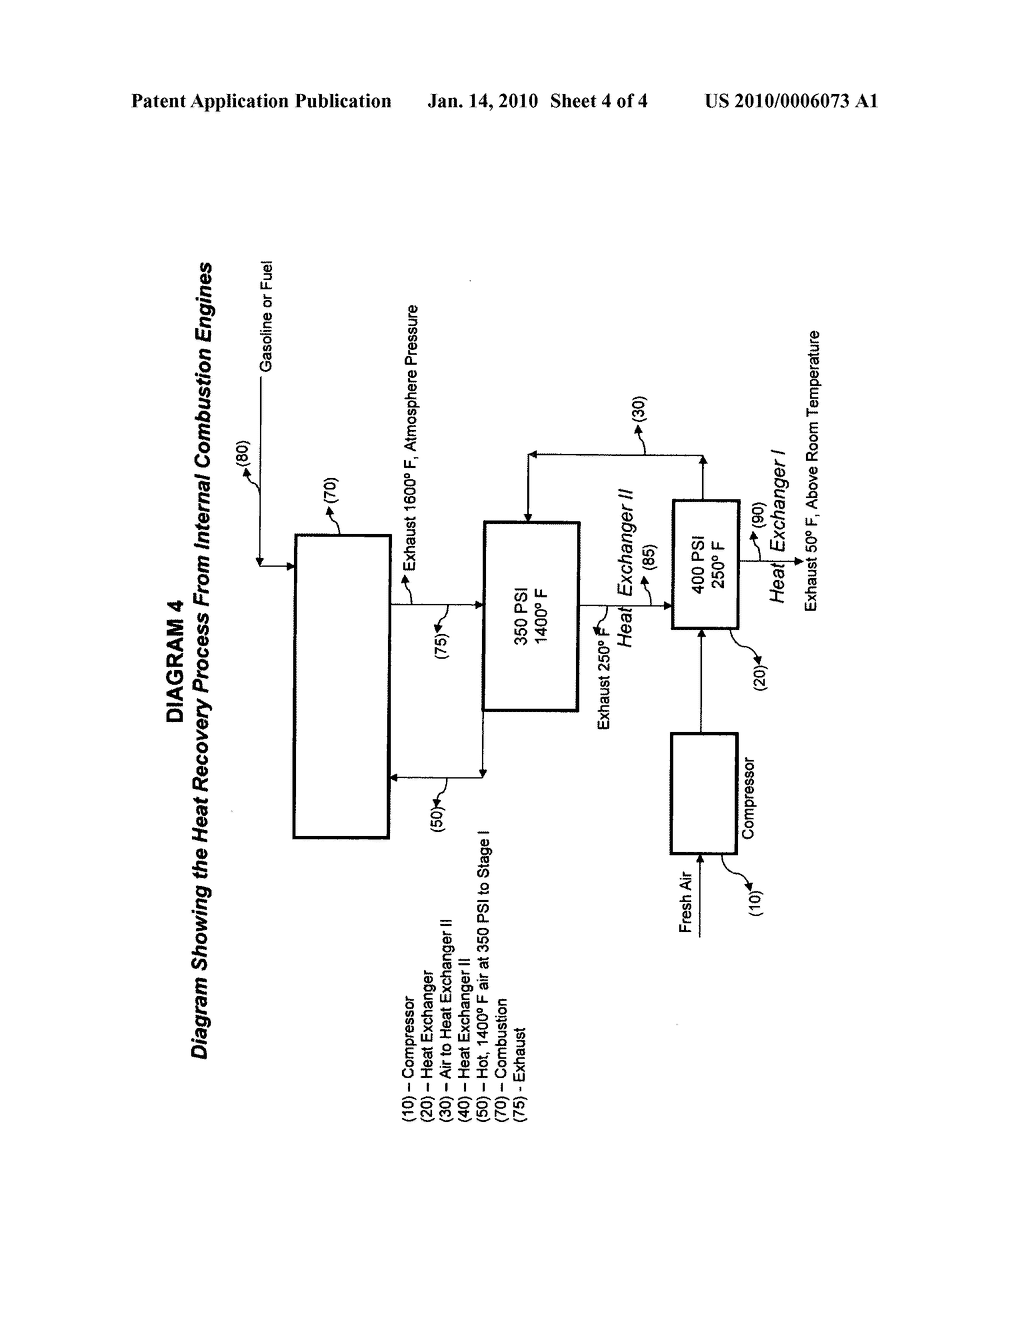 Increasing Effeciency Of Internal Combustion Engines To Increase Heat Engine Diagram Mileage Vehicles Schematic And Image 05